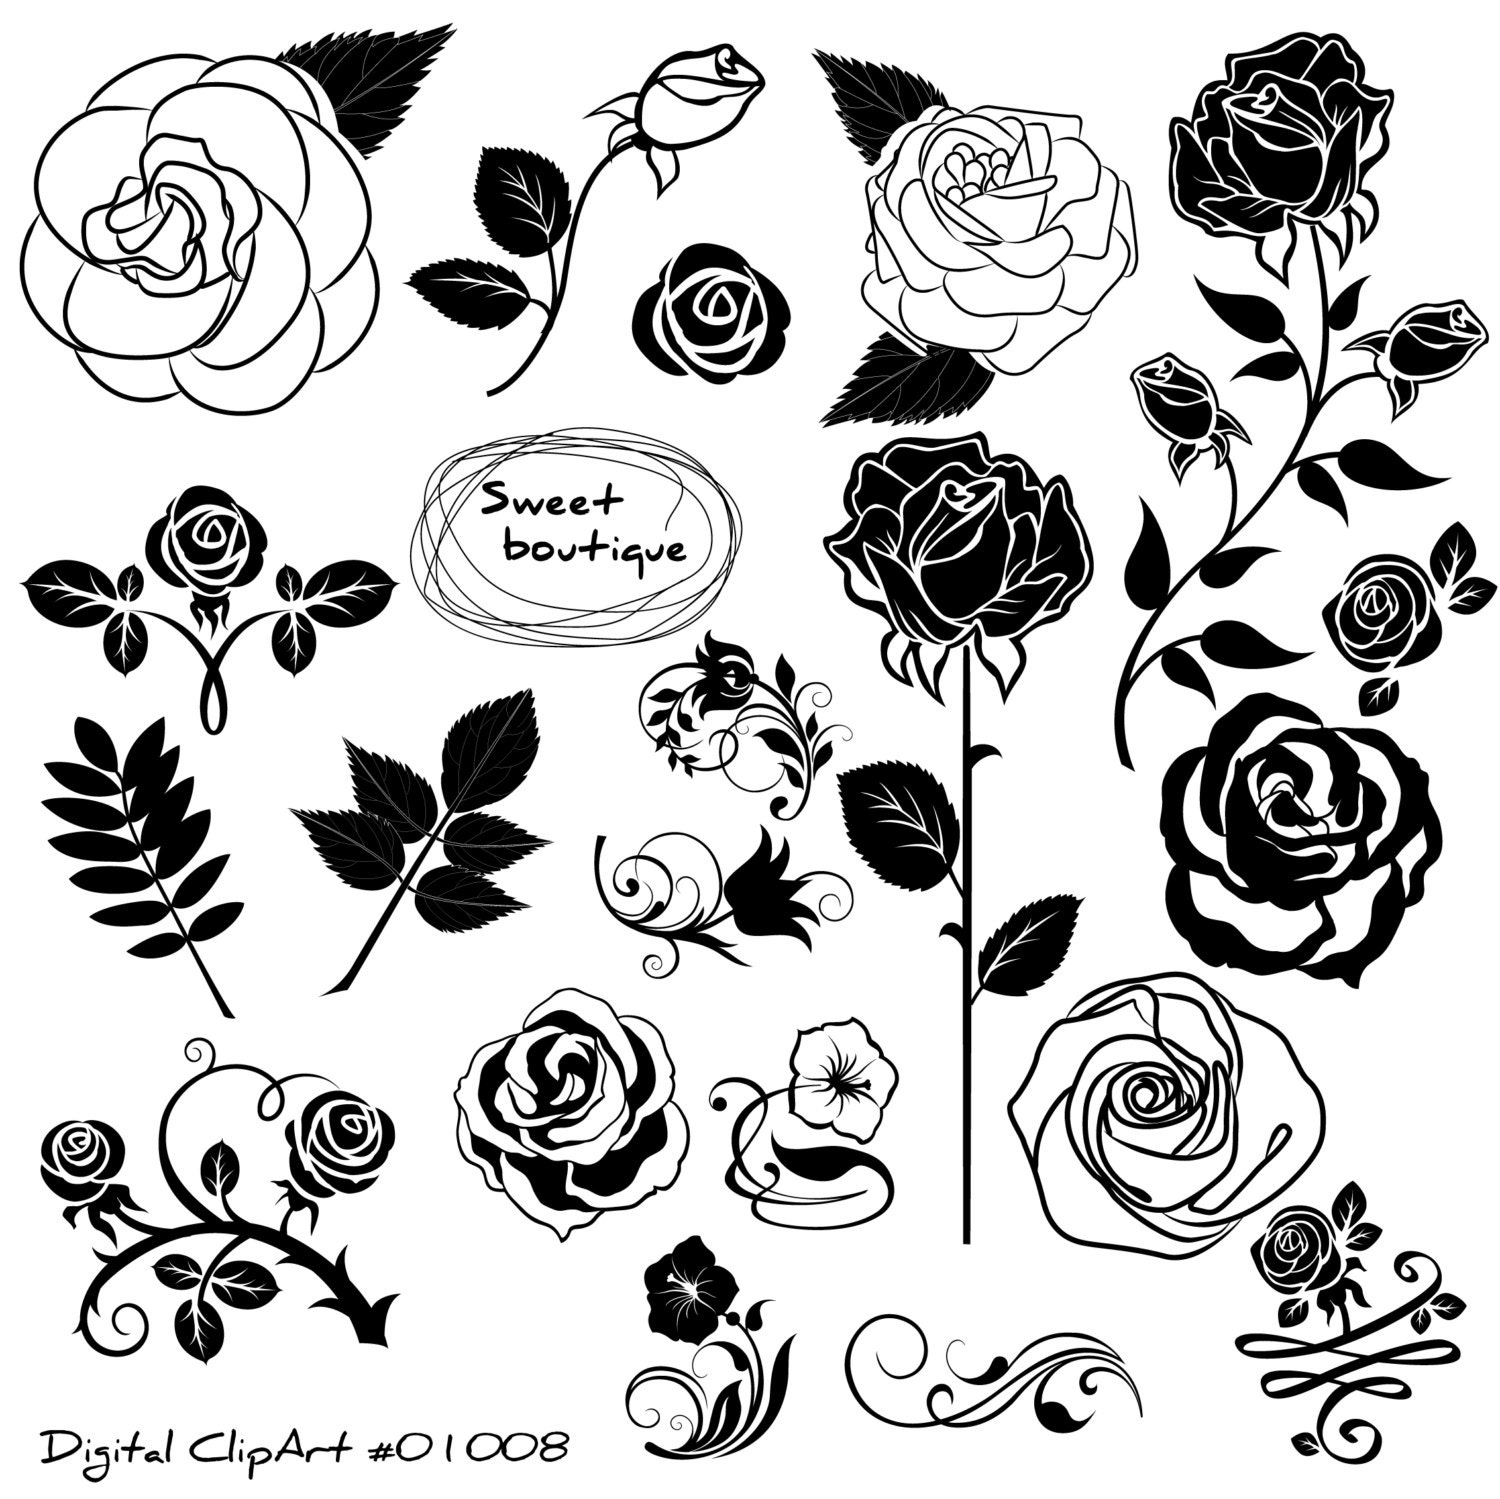 Black And White Rose Images Stock Photos amp Vectors